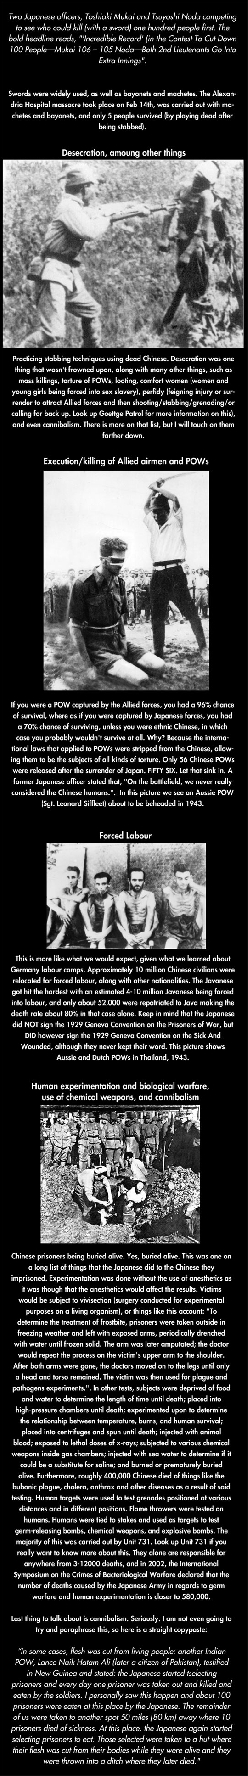 Did you know what Japan did in World War II